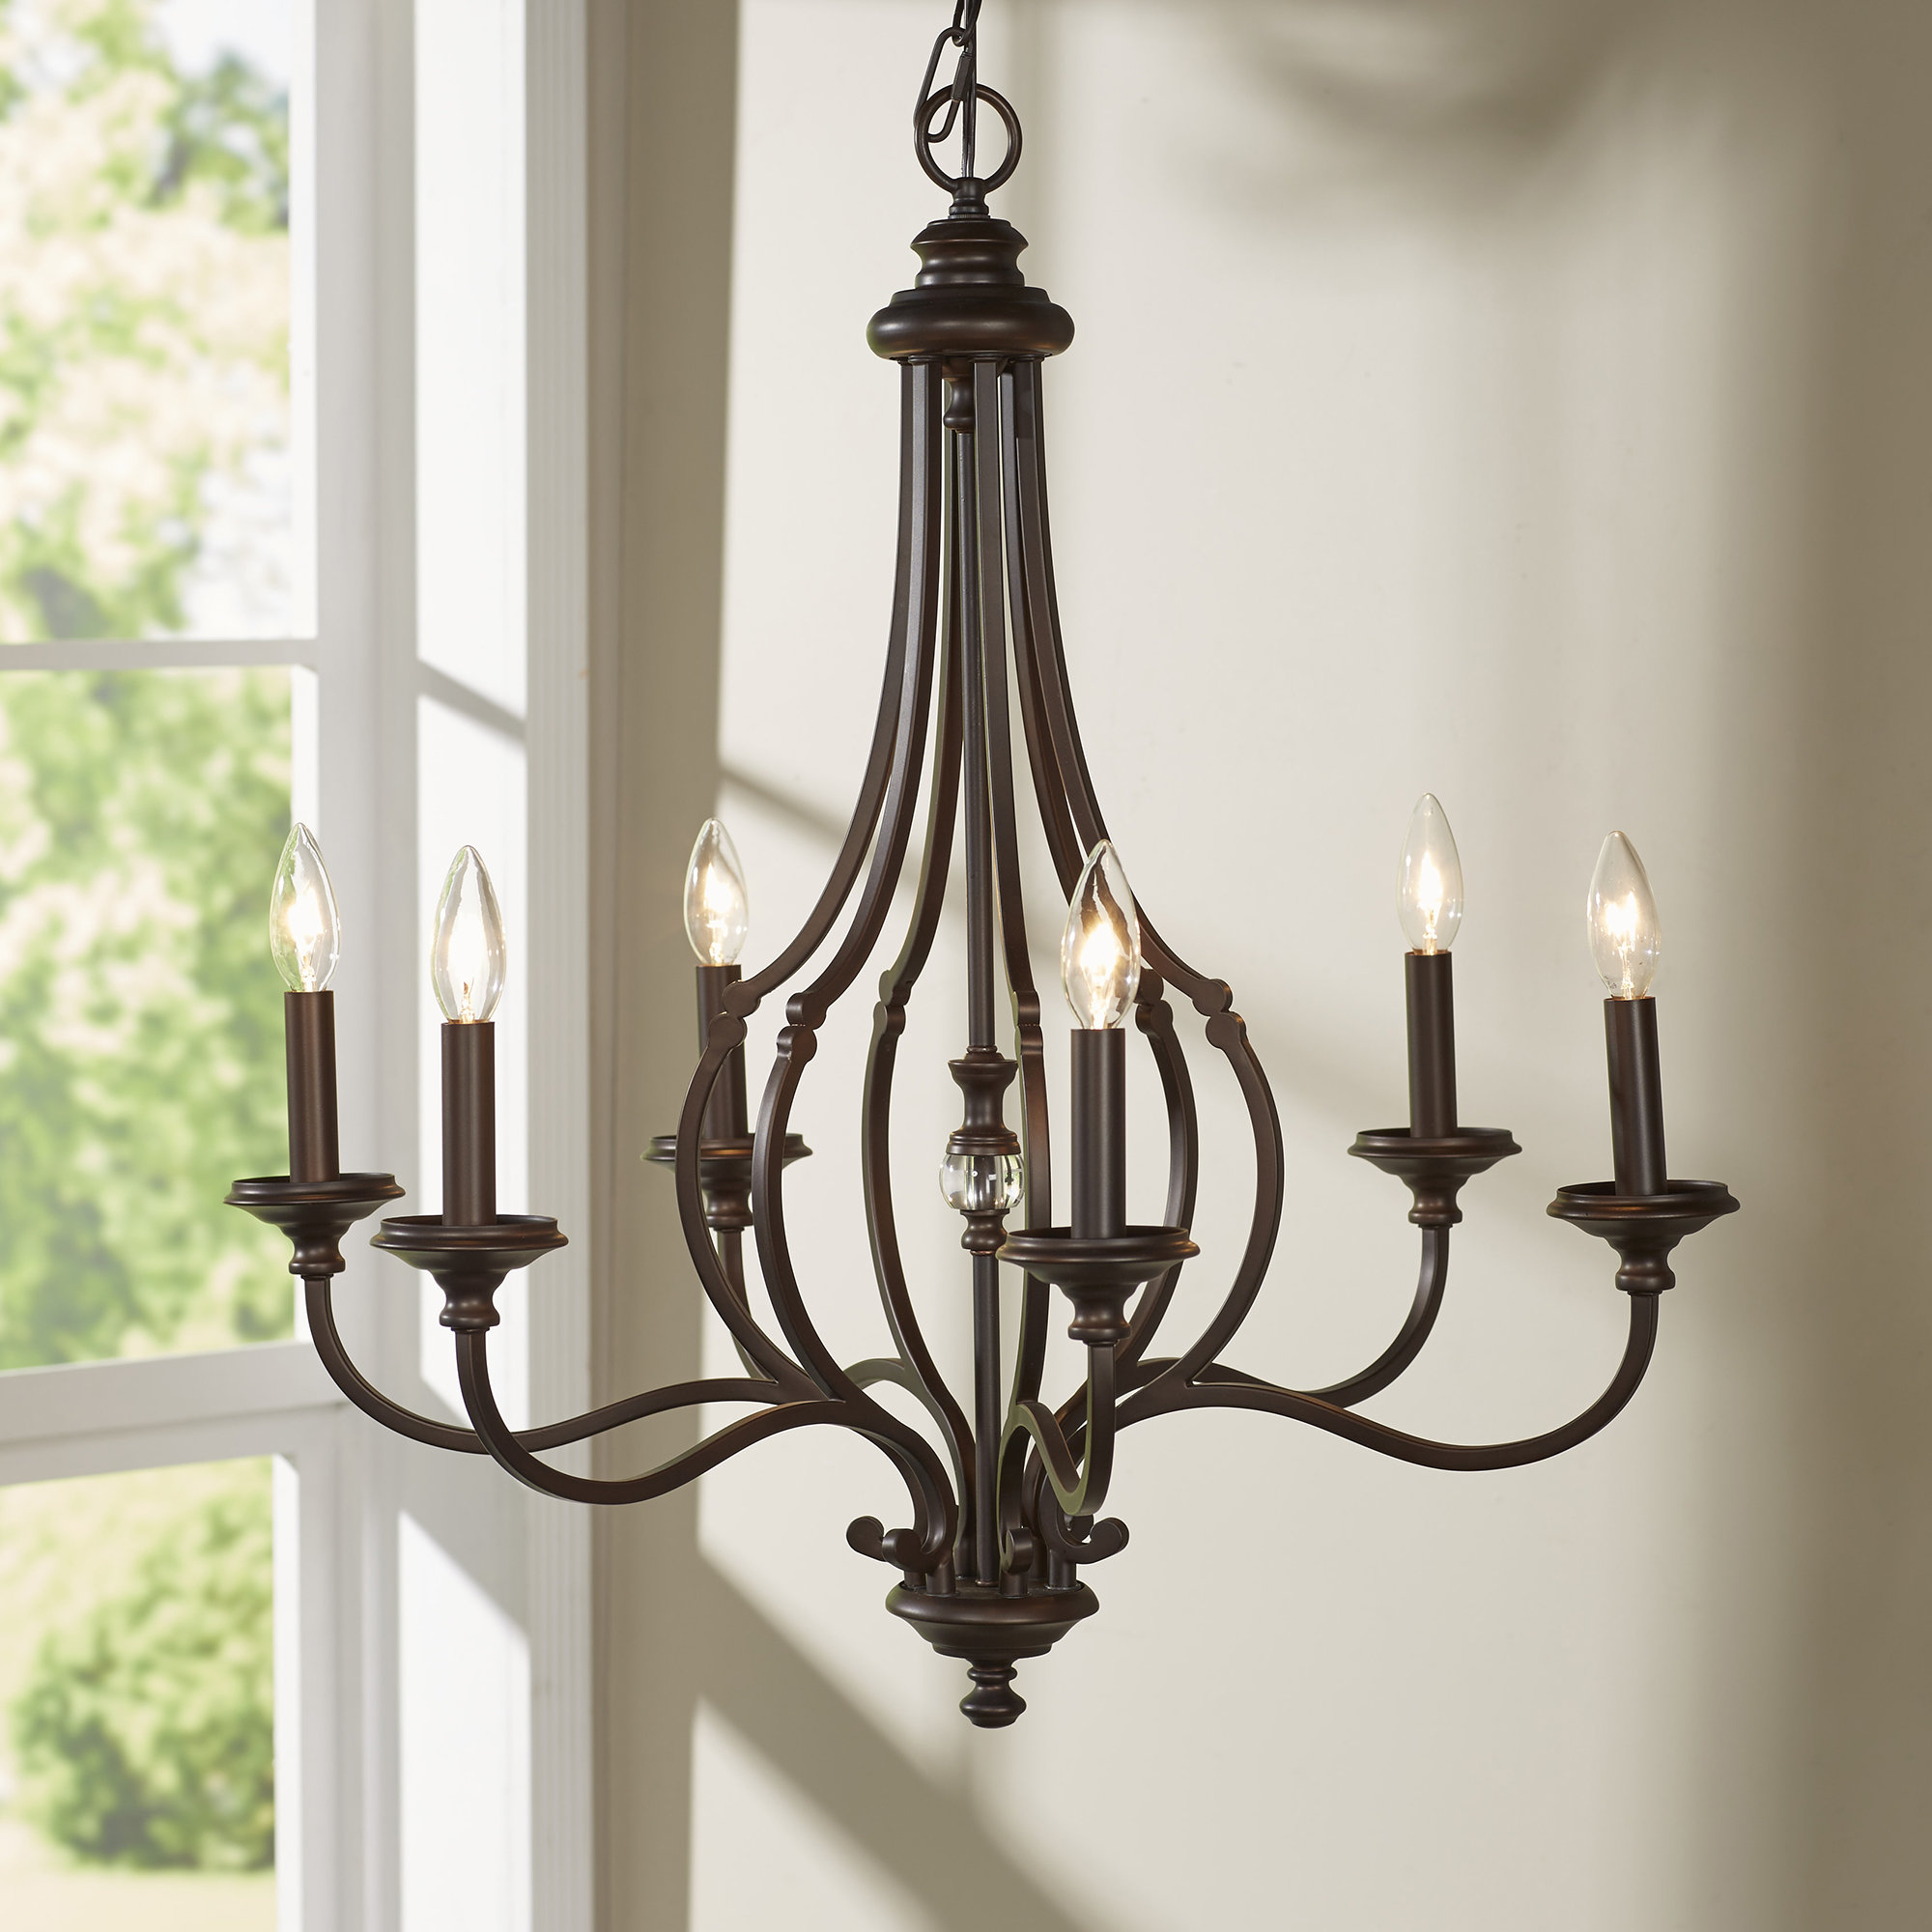 Darby Home Co Jaclyn 6 Light Candle Style Chandelier Within Widely Used Hamza 6 Light Candle Style Chandeliers (View 2 of 20)